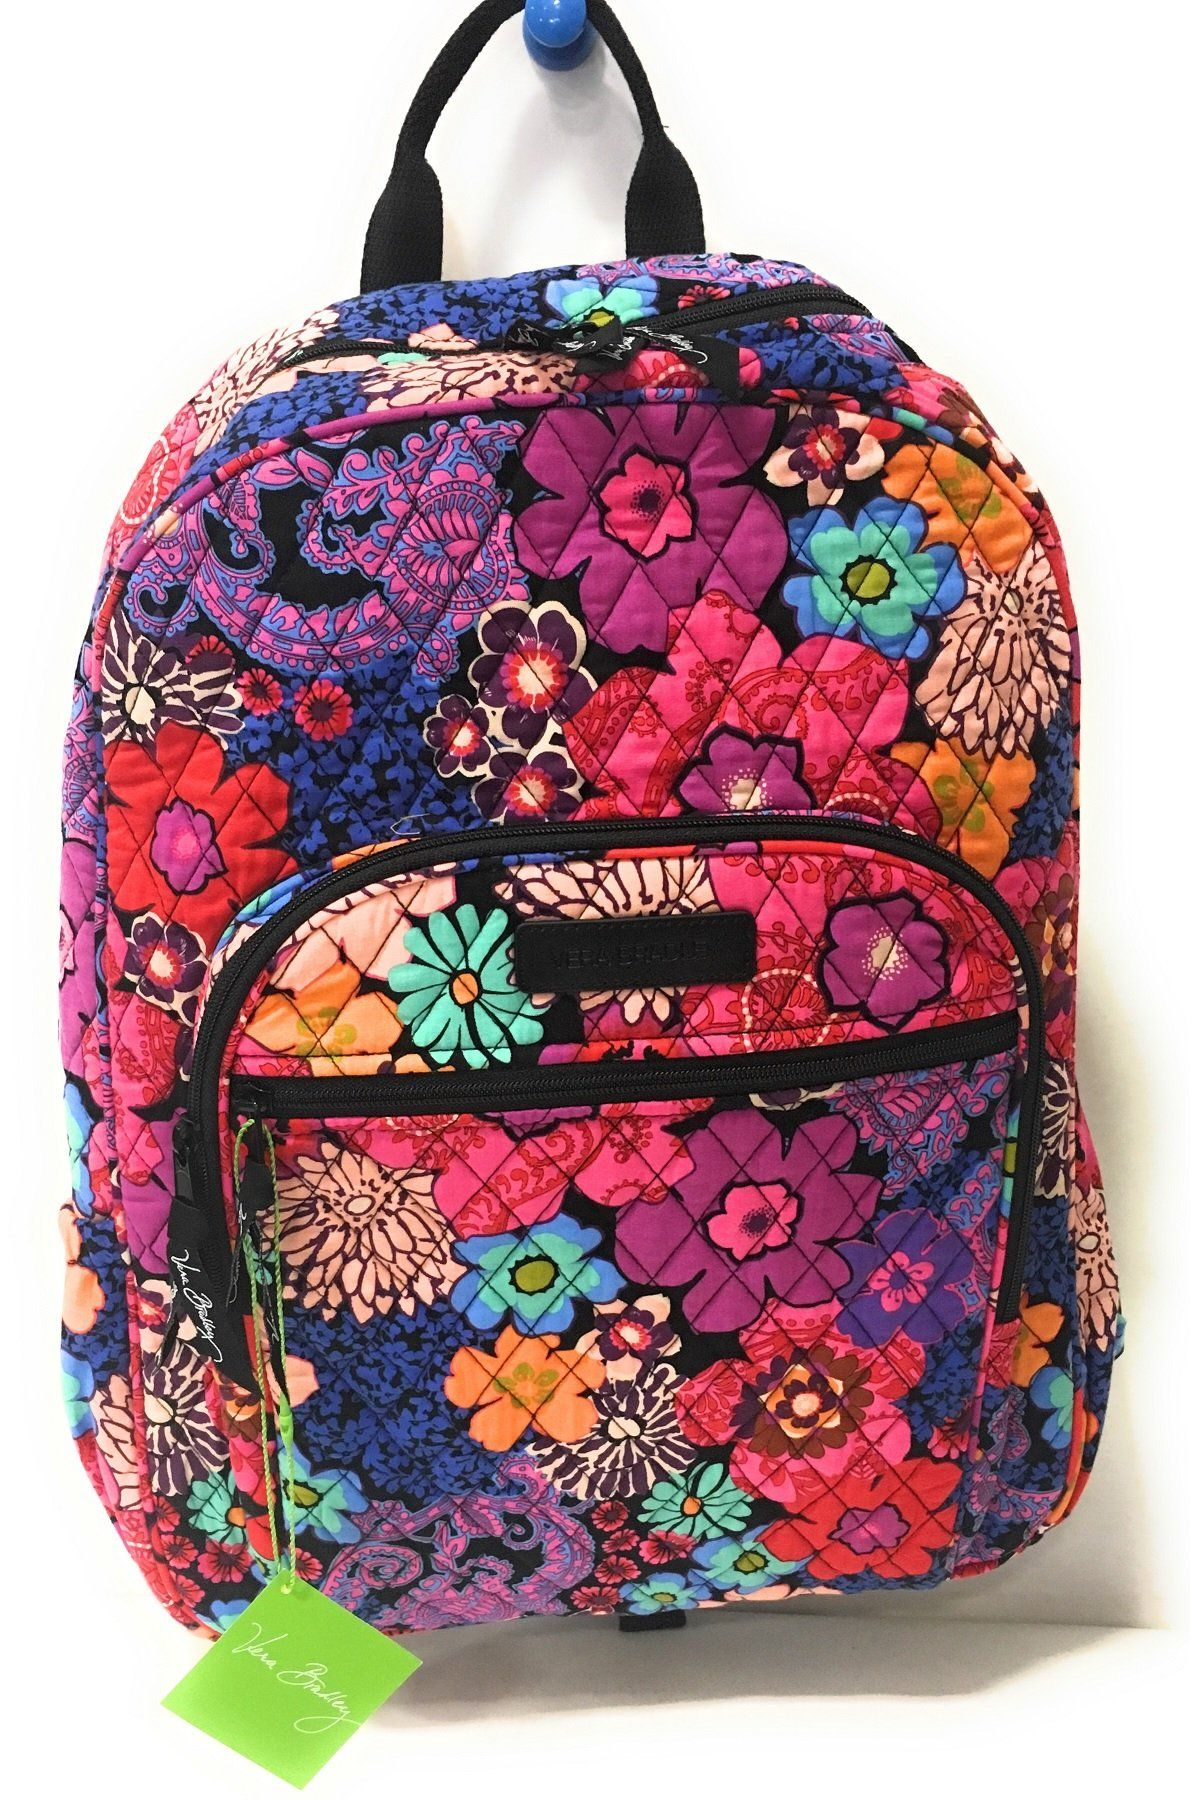 b5039a4c48 Vera Bradley Campus Backpack with Solid Color Interior (Updated Version)  (Floral Fiesta with